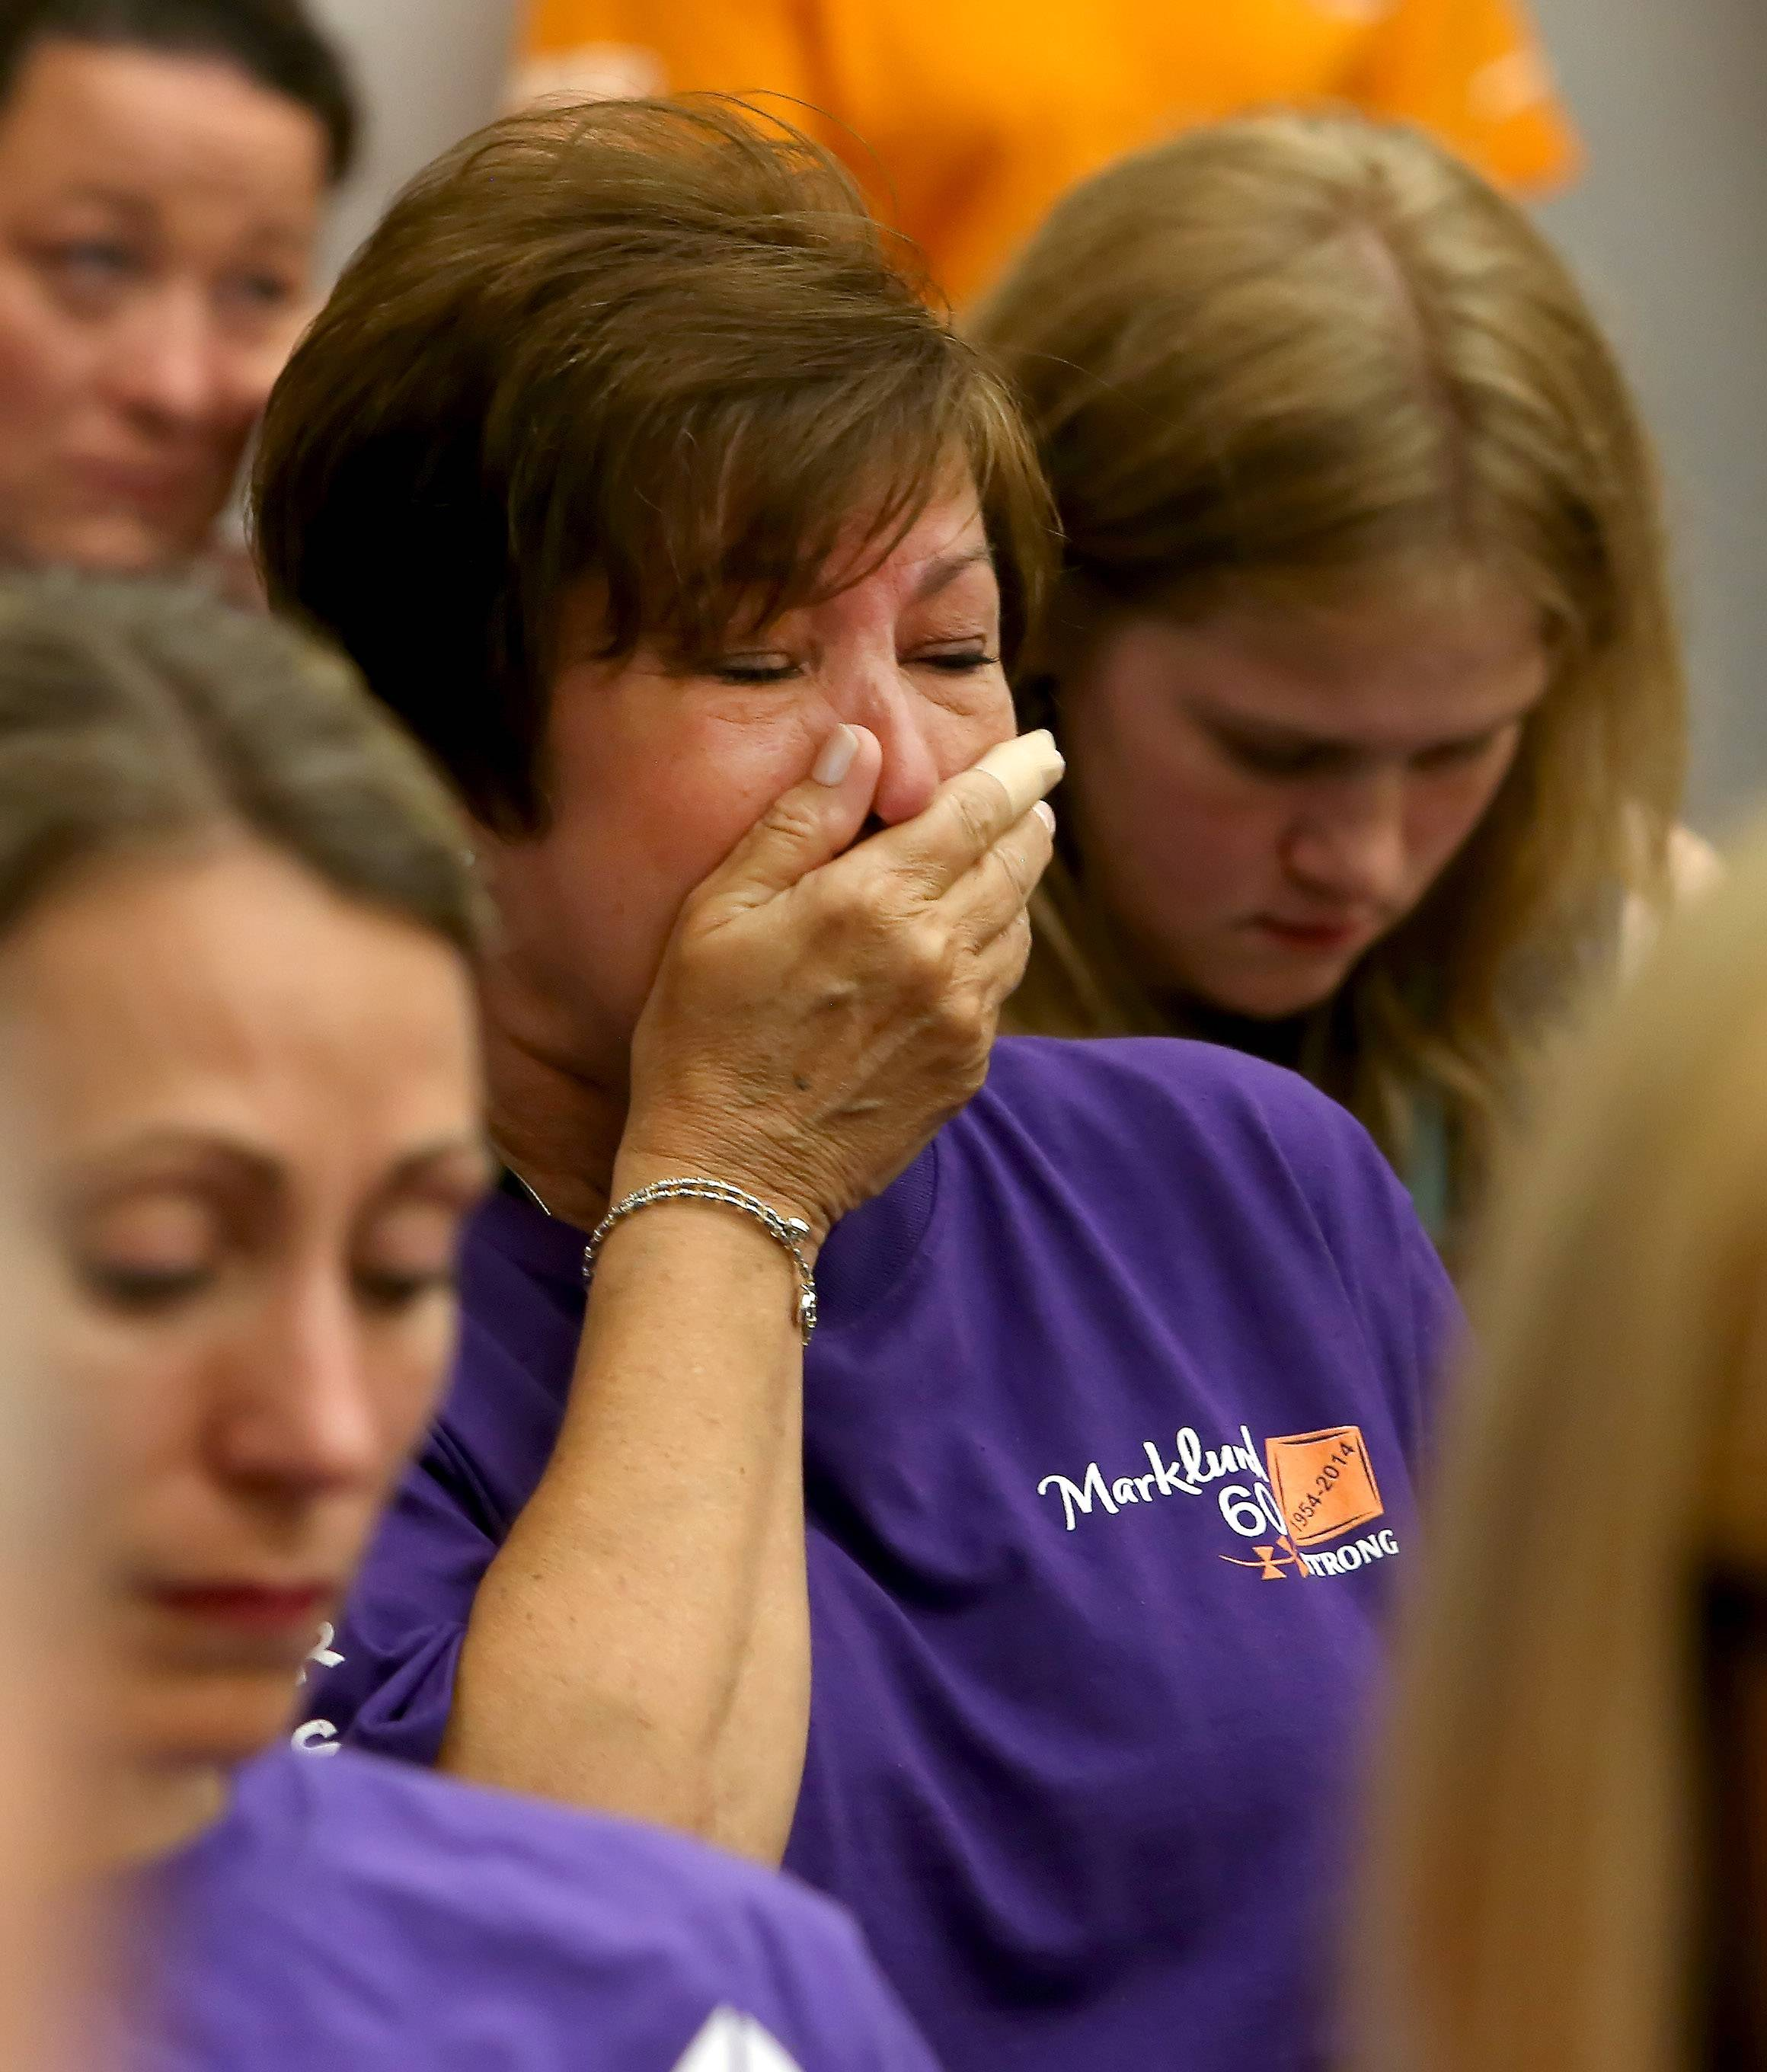 Susan Semla of Bloomingdale, who has an autistic daughter, gets emotional as another mother of an autistic child speaks Monday during Bloomingdale's village board meeting. Residents spoke for and against Marklund's proposal to expand its school for autism.